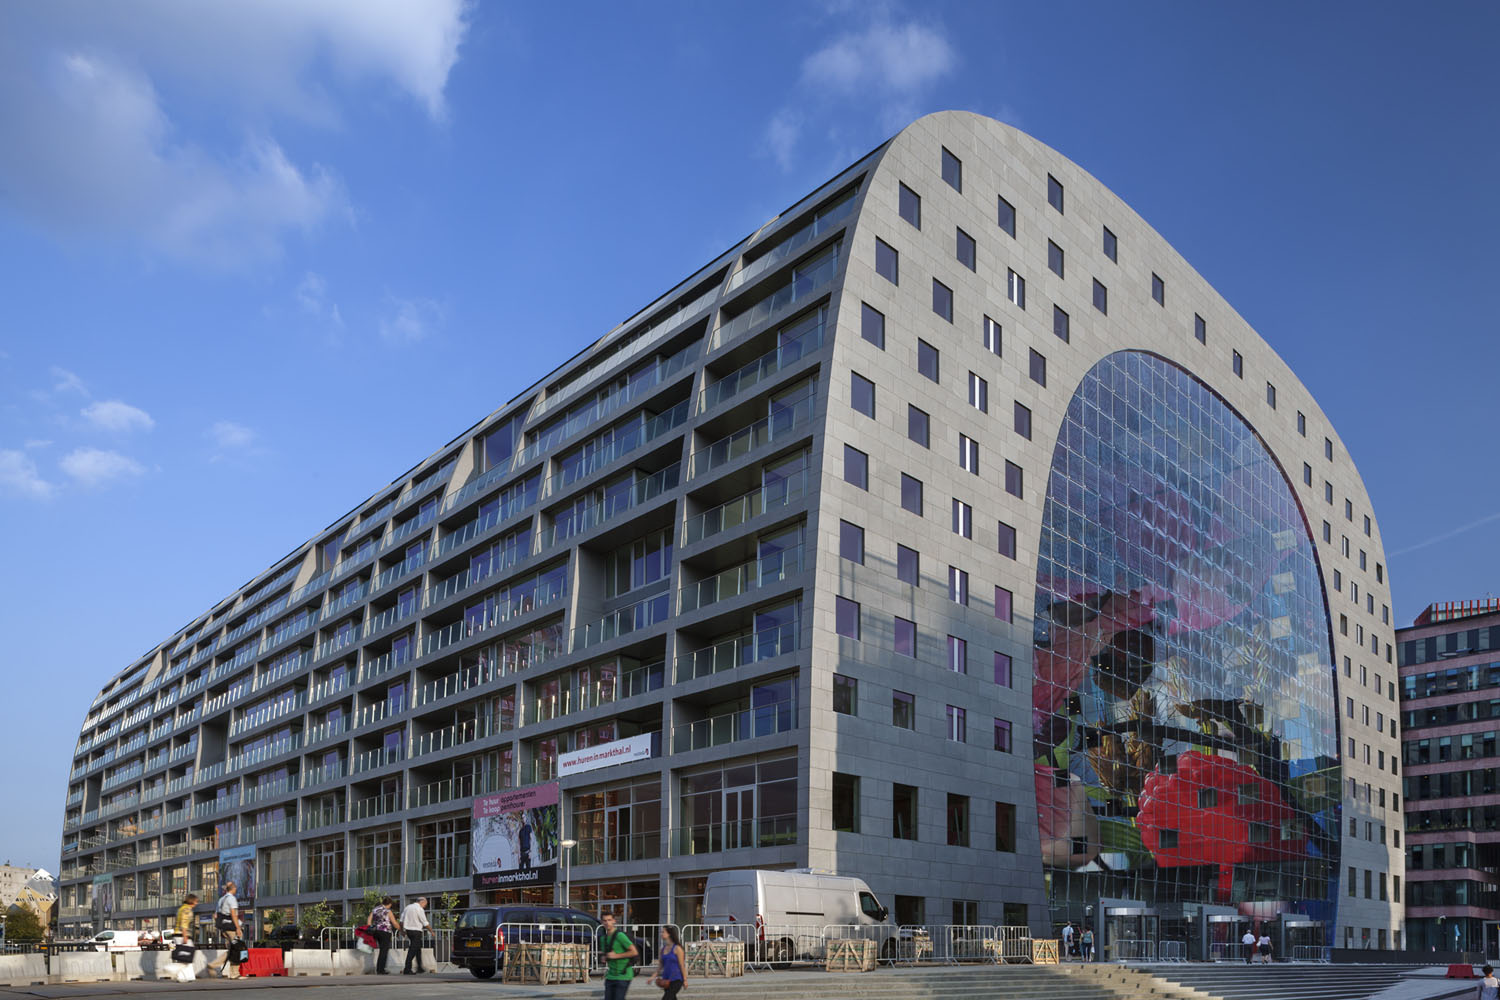 mm_Markthal Rotterdam design by MVRDV_02